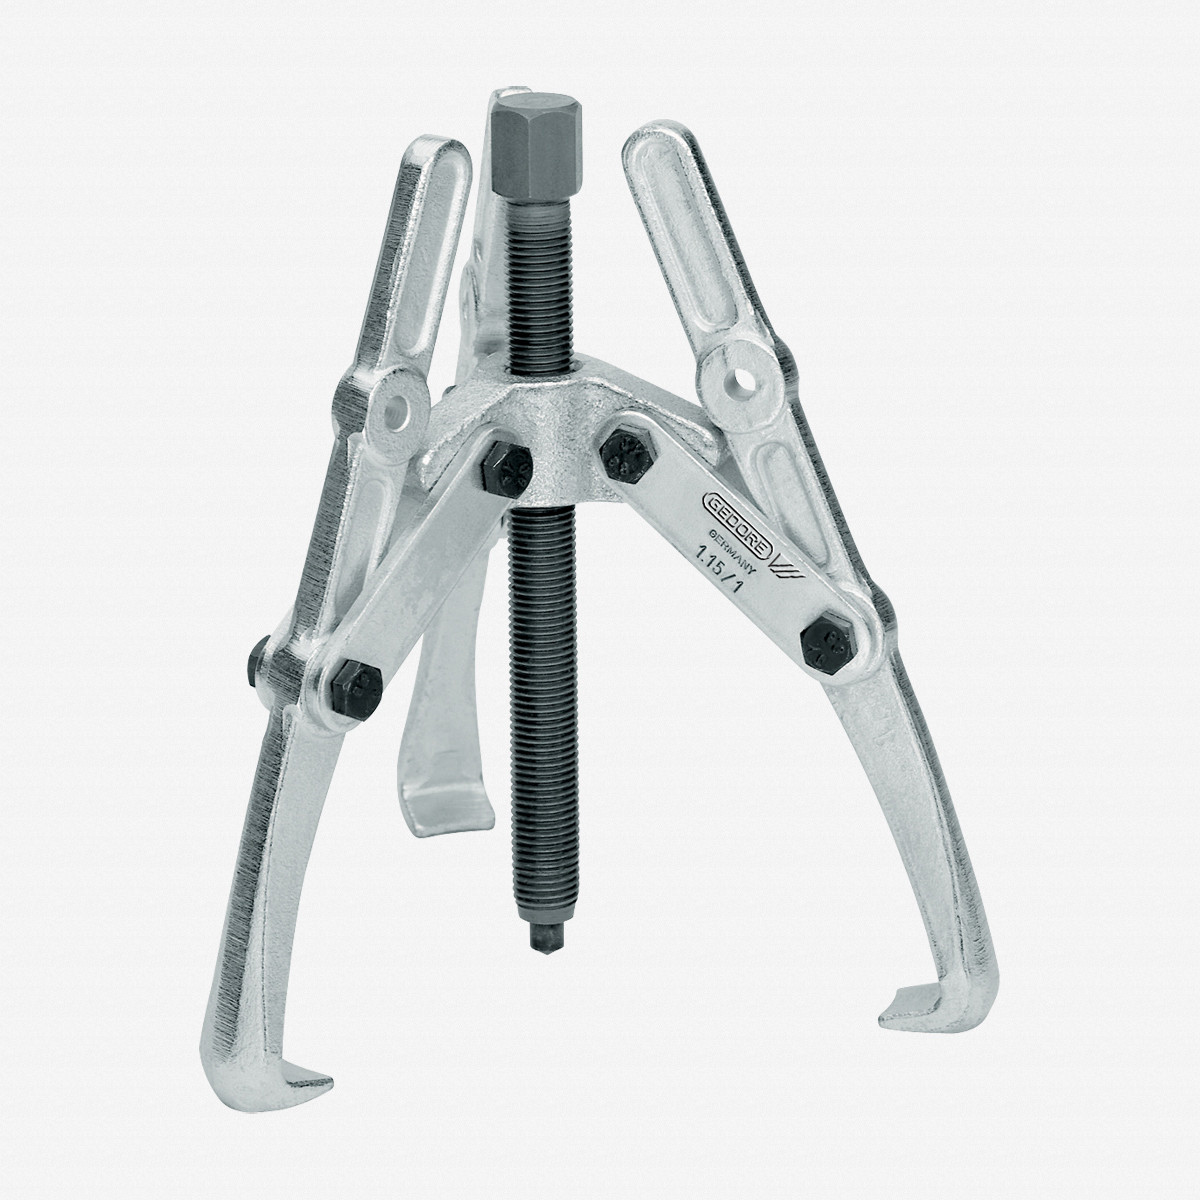 Gedore 1.15/4 Puller 3-arm pattern 280x390 mm - KC Tool